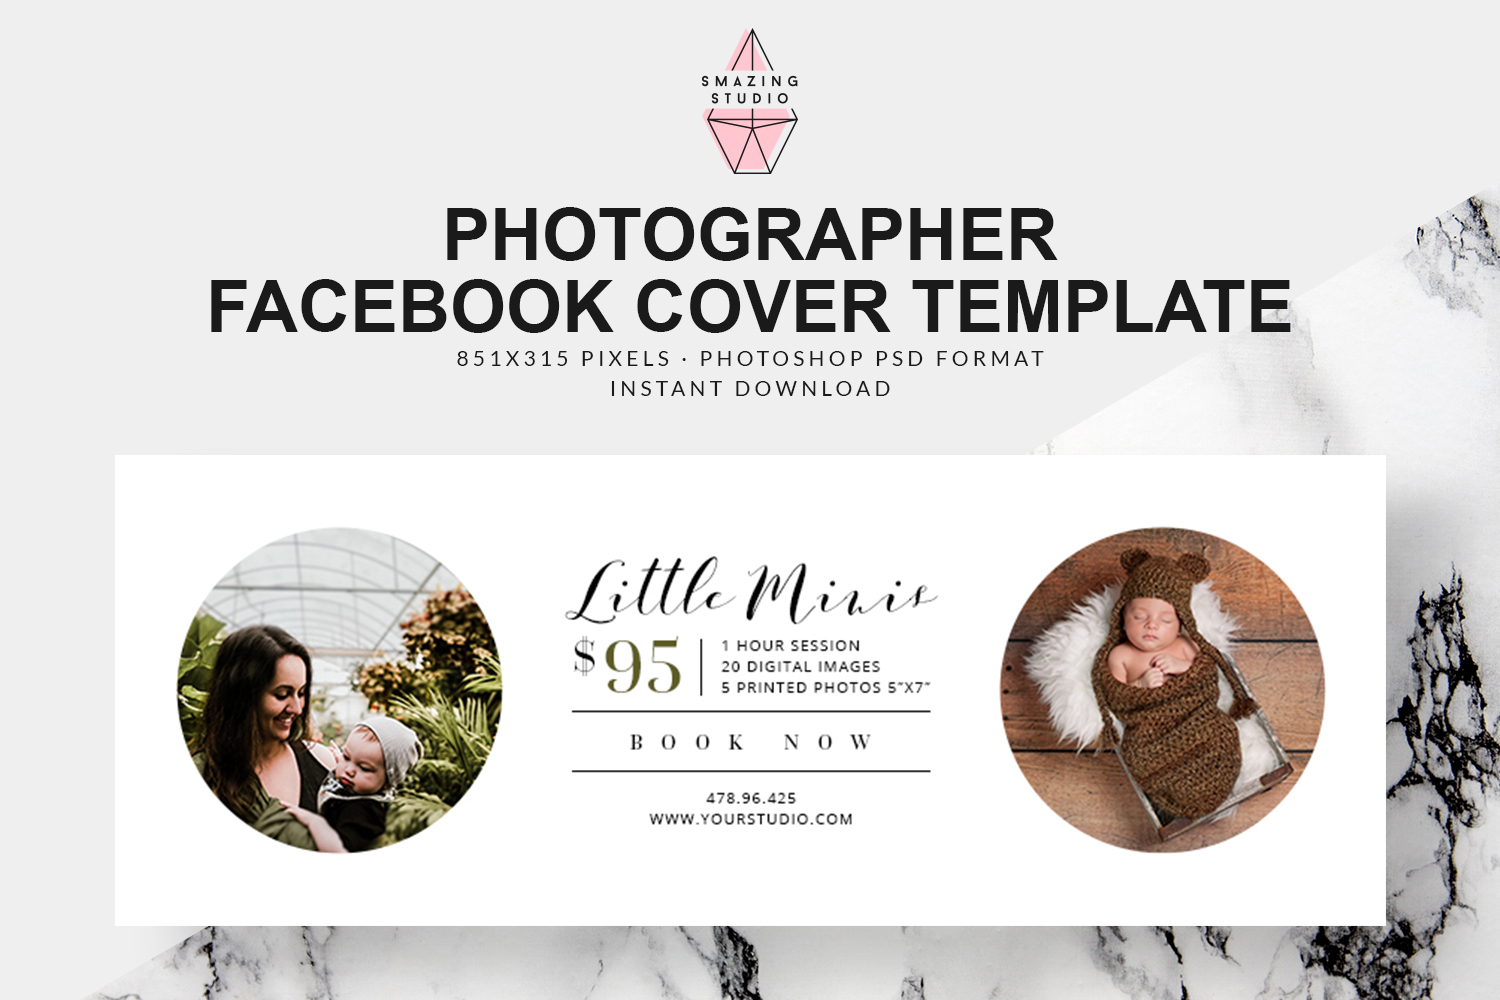 Photographer Facebook Cover Template - FBC002 example image 1